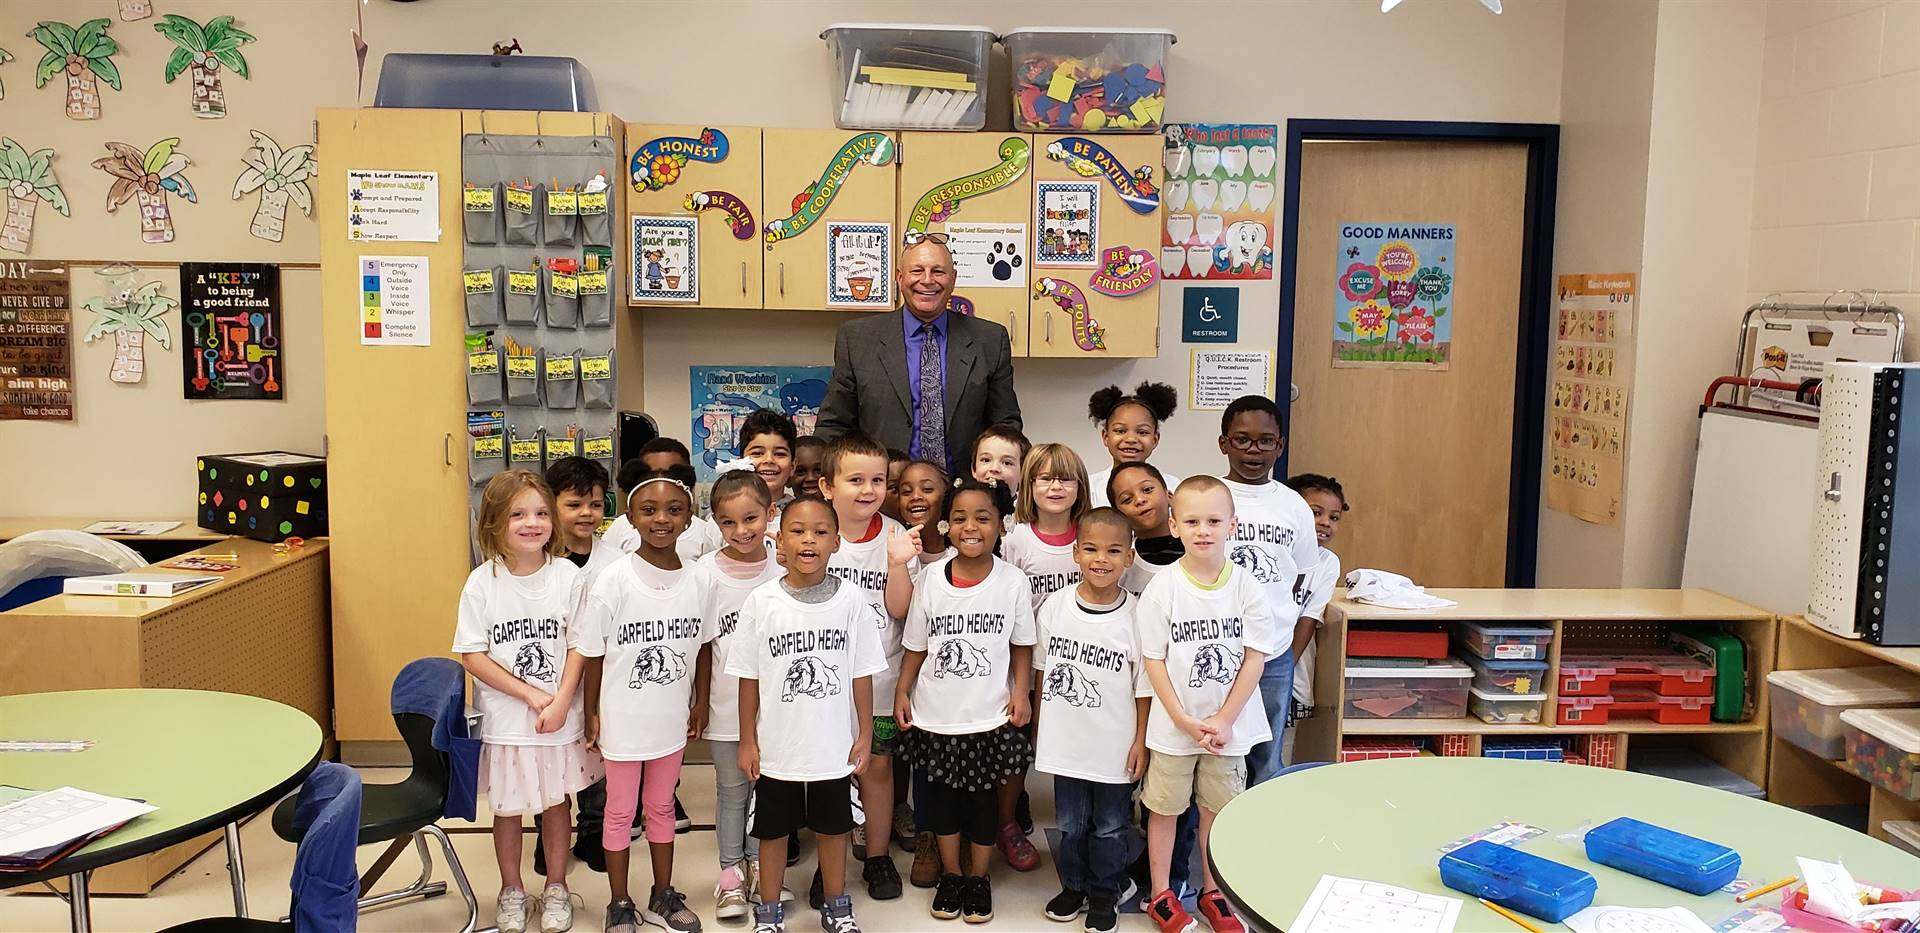 Class of 2031 gets their shirts from Mr. O